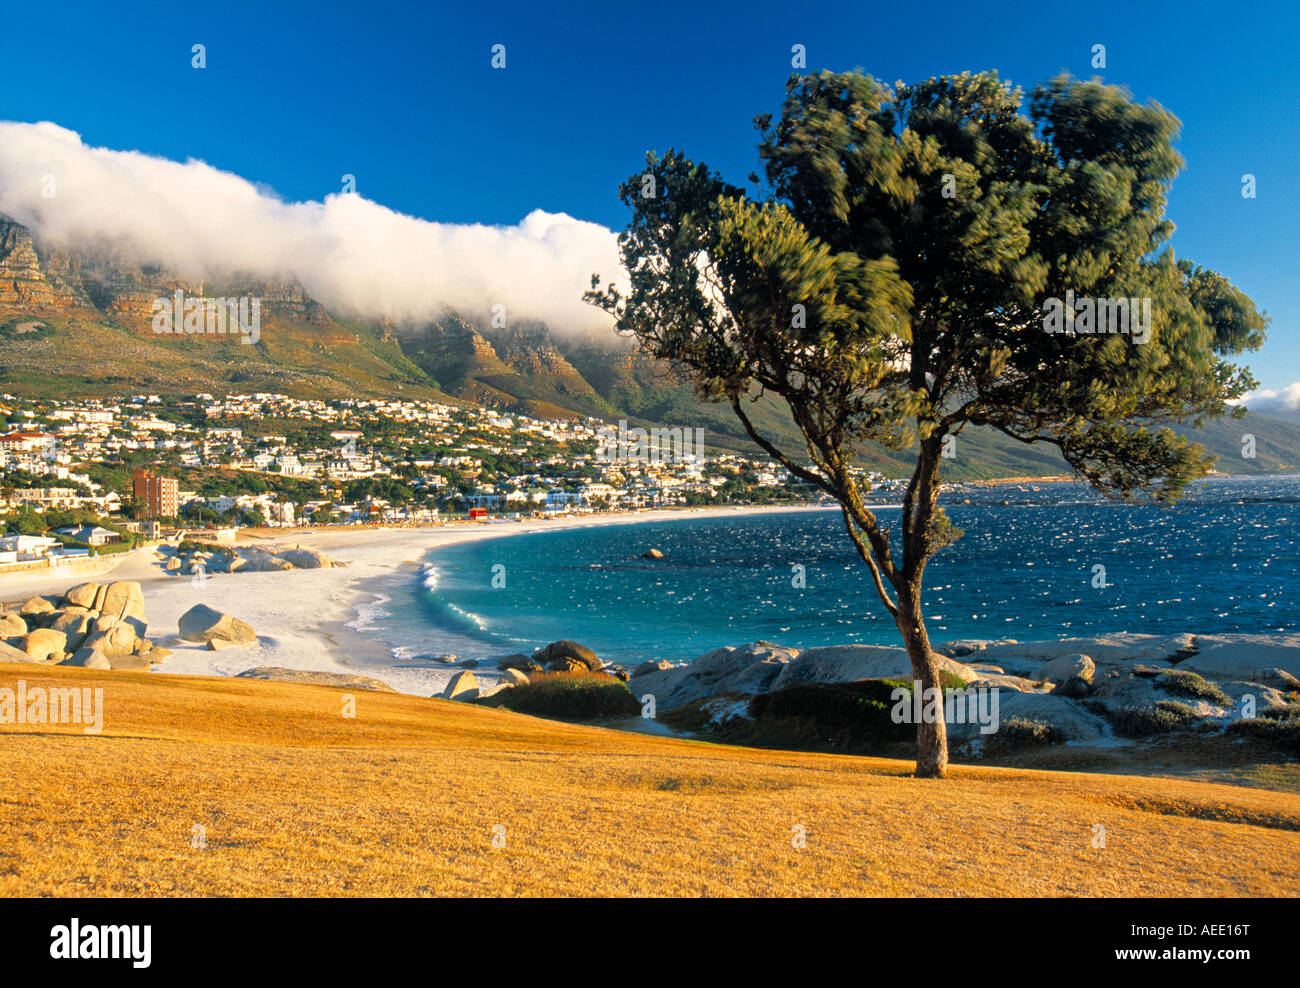 Clifton Bay and beach, Cape Town, South Africa - Stock Image